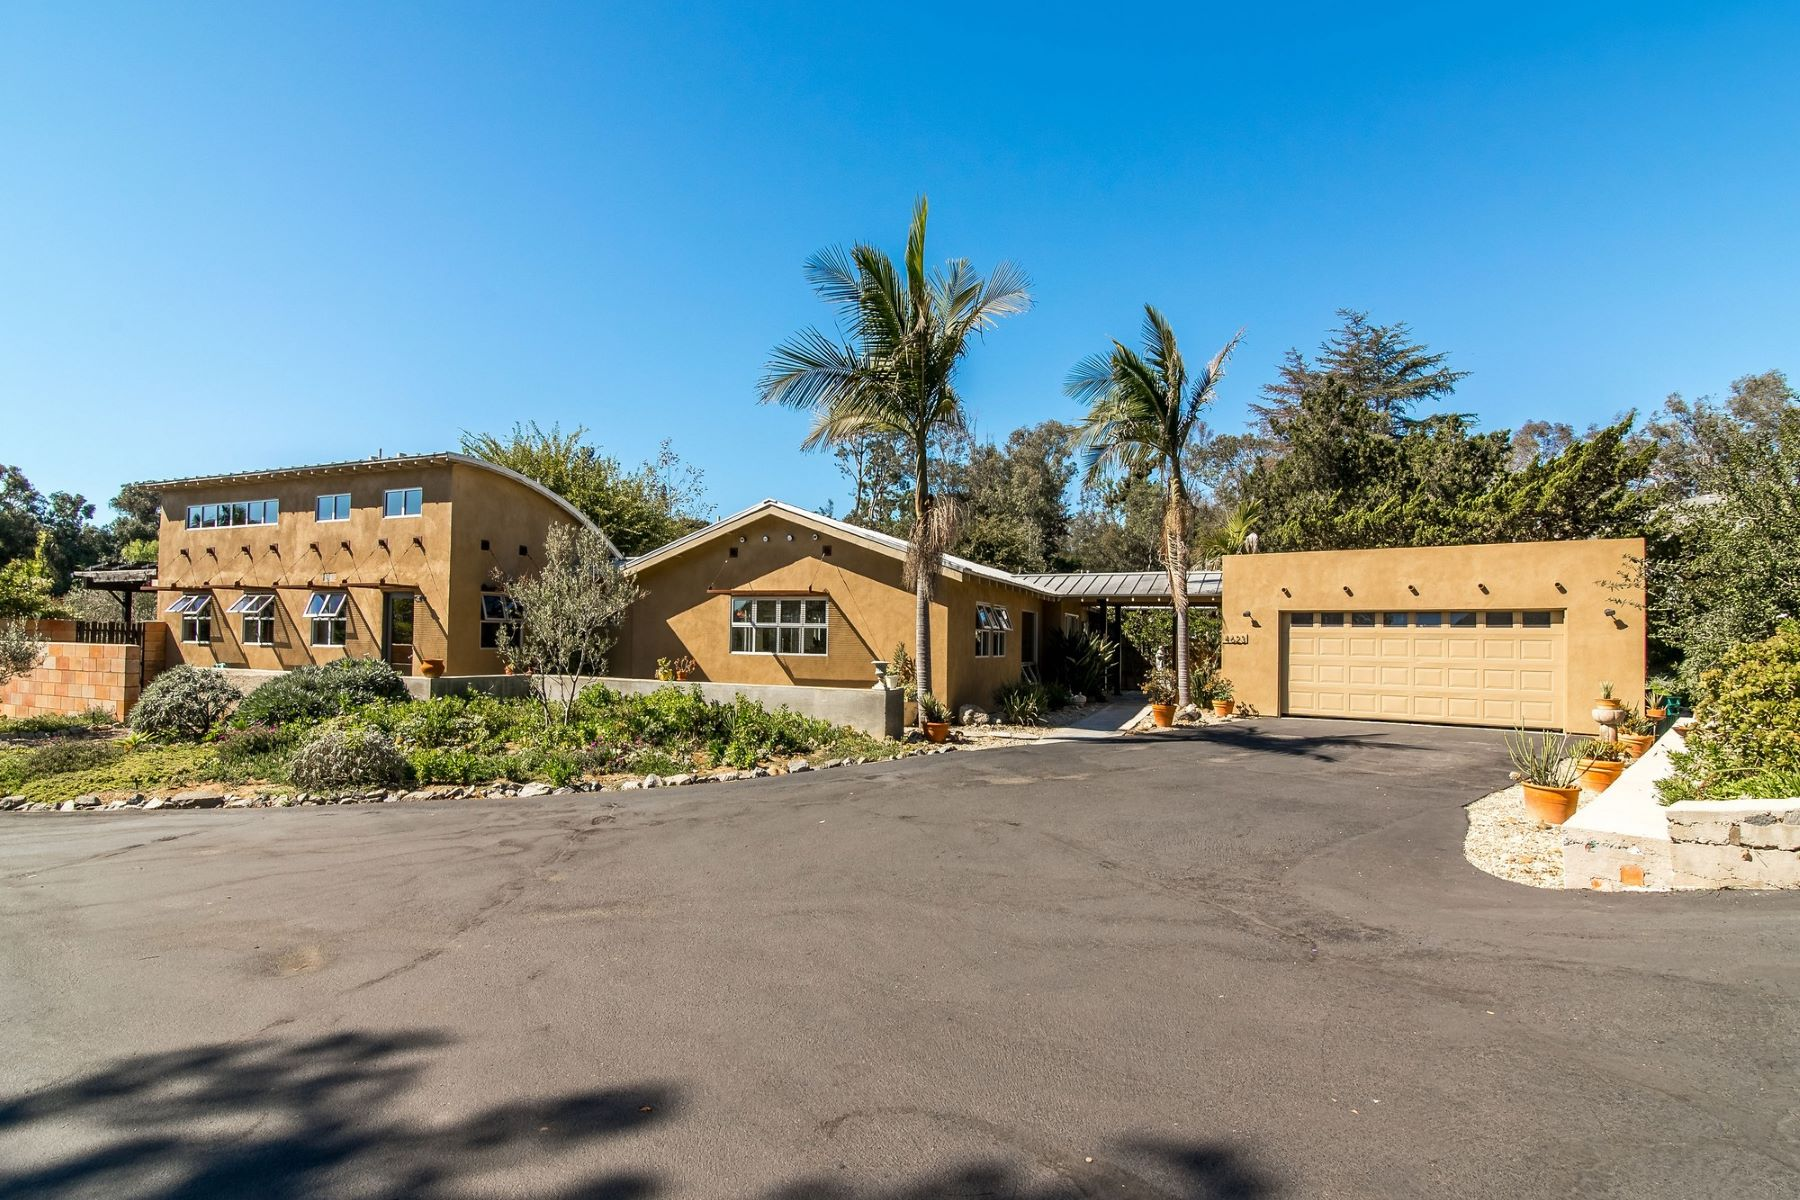 Single Family Home for Active at 4623-25 Sun Valley Road 4623-25 Sun Valley Road Del Mar, California 92014 United States